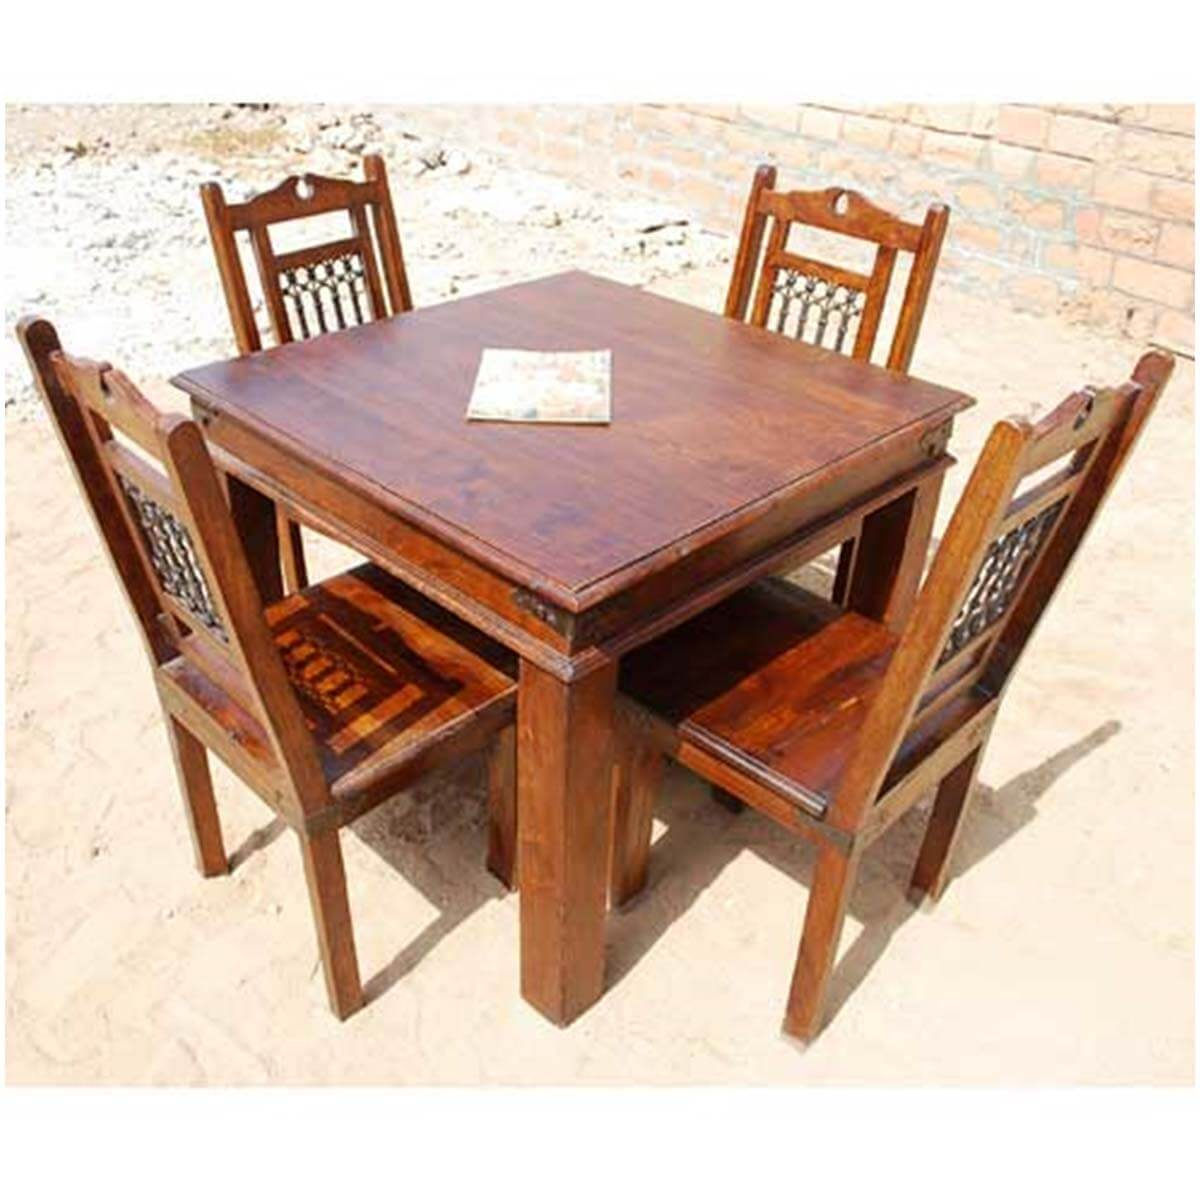 Dining Table Square: Grogan Rustic Solid Wood Square Dining Table